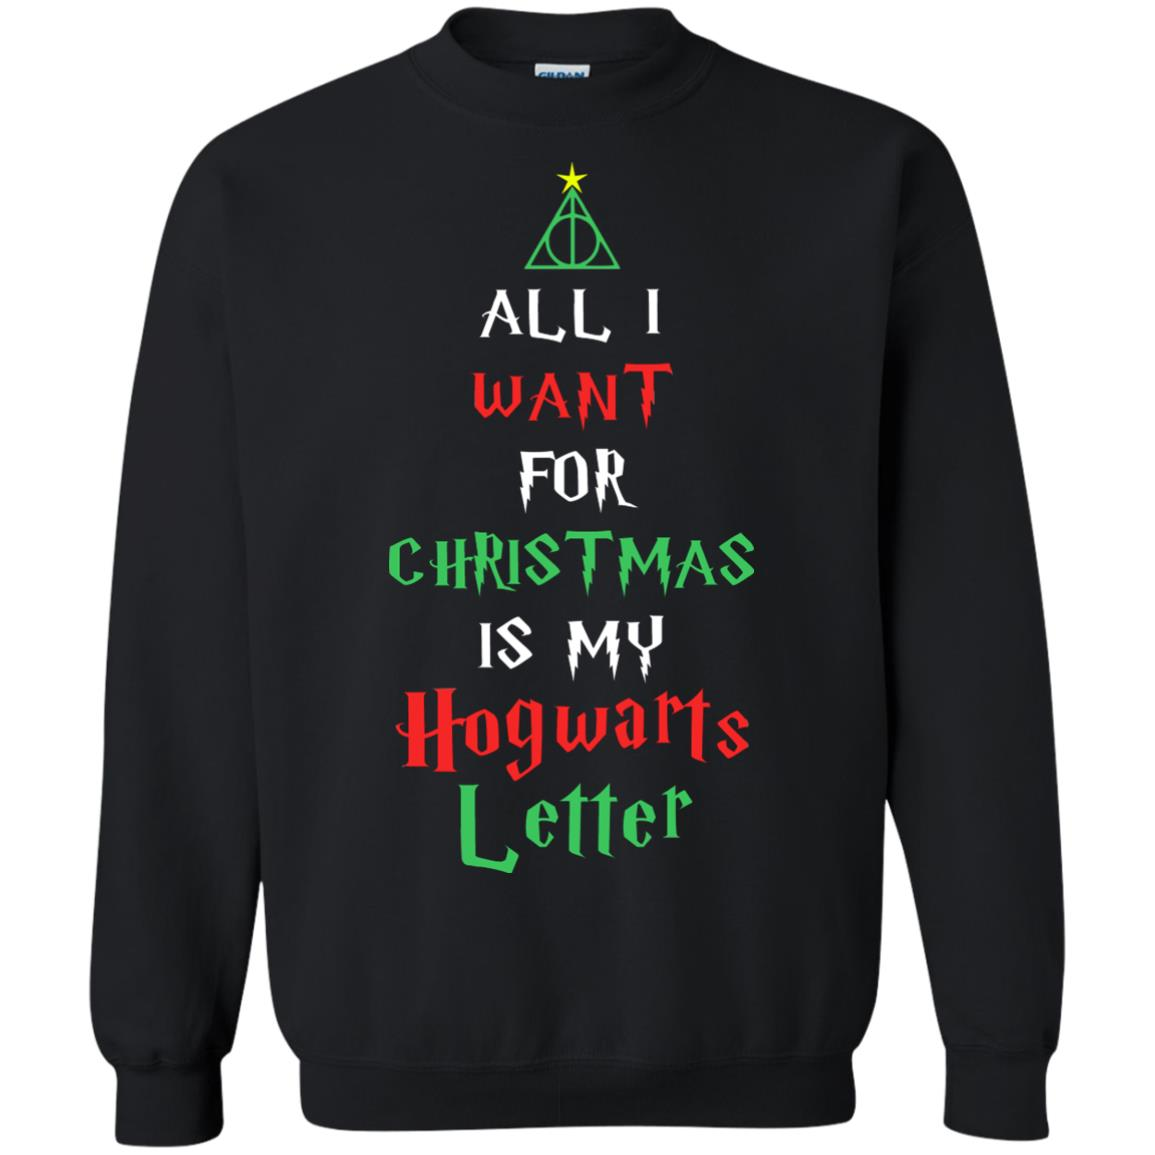 image 524 - All I Want For Christmas Is My Hogwarts Letter Sweater, Christmas Sweatshirts